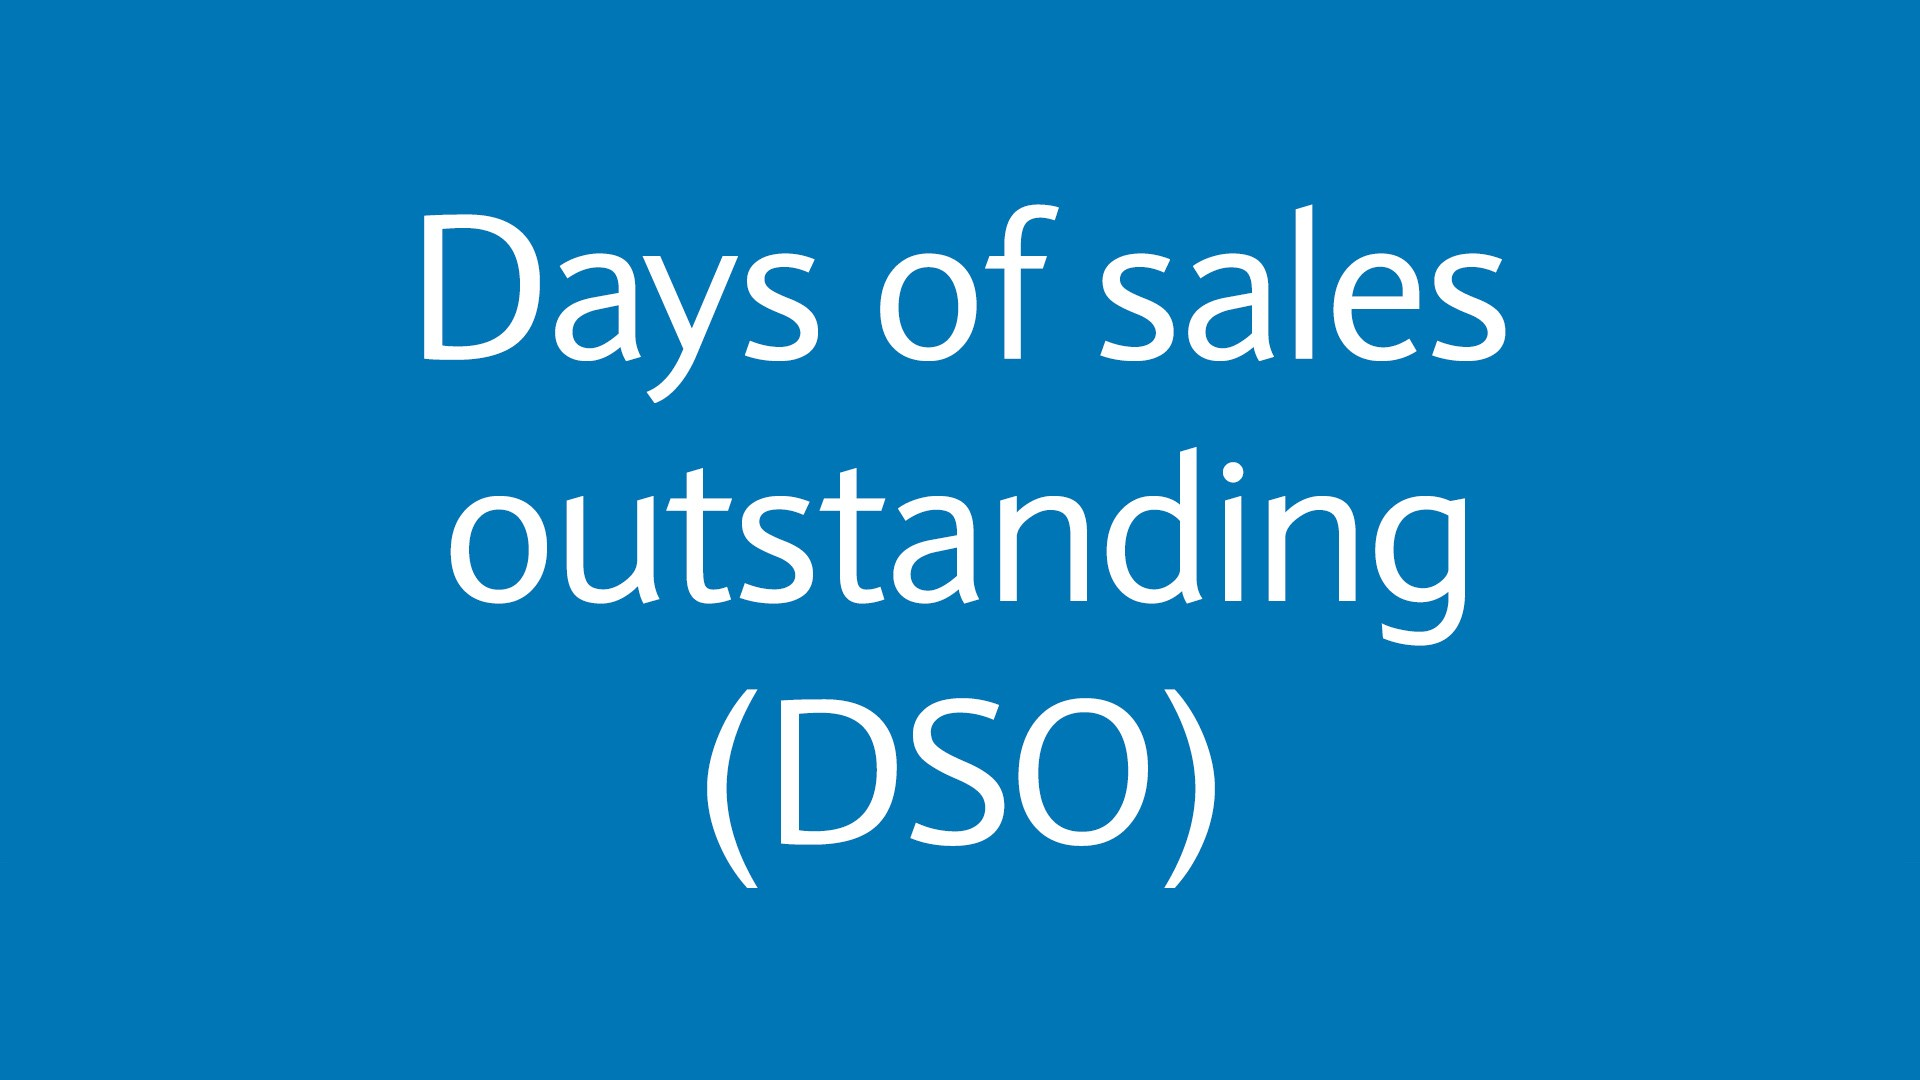 Days of sales outstanding (DSO)